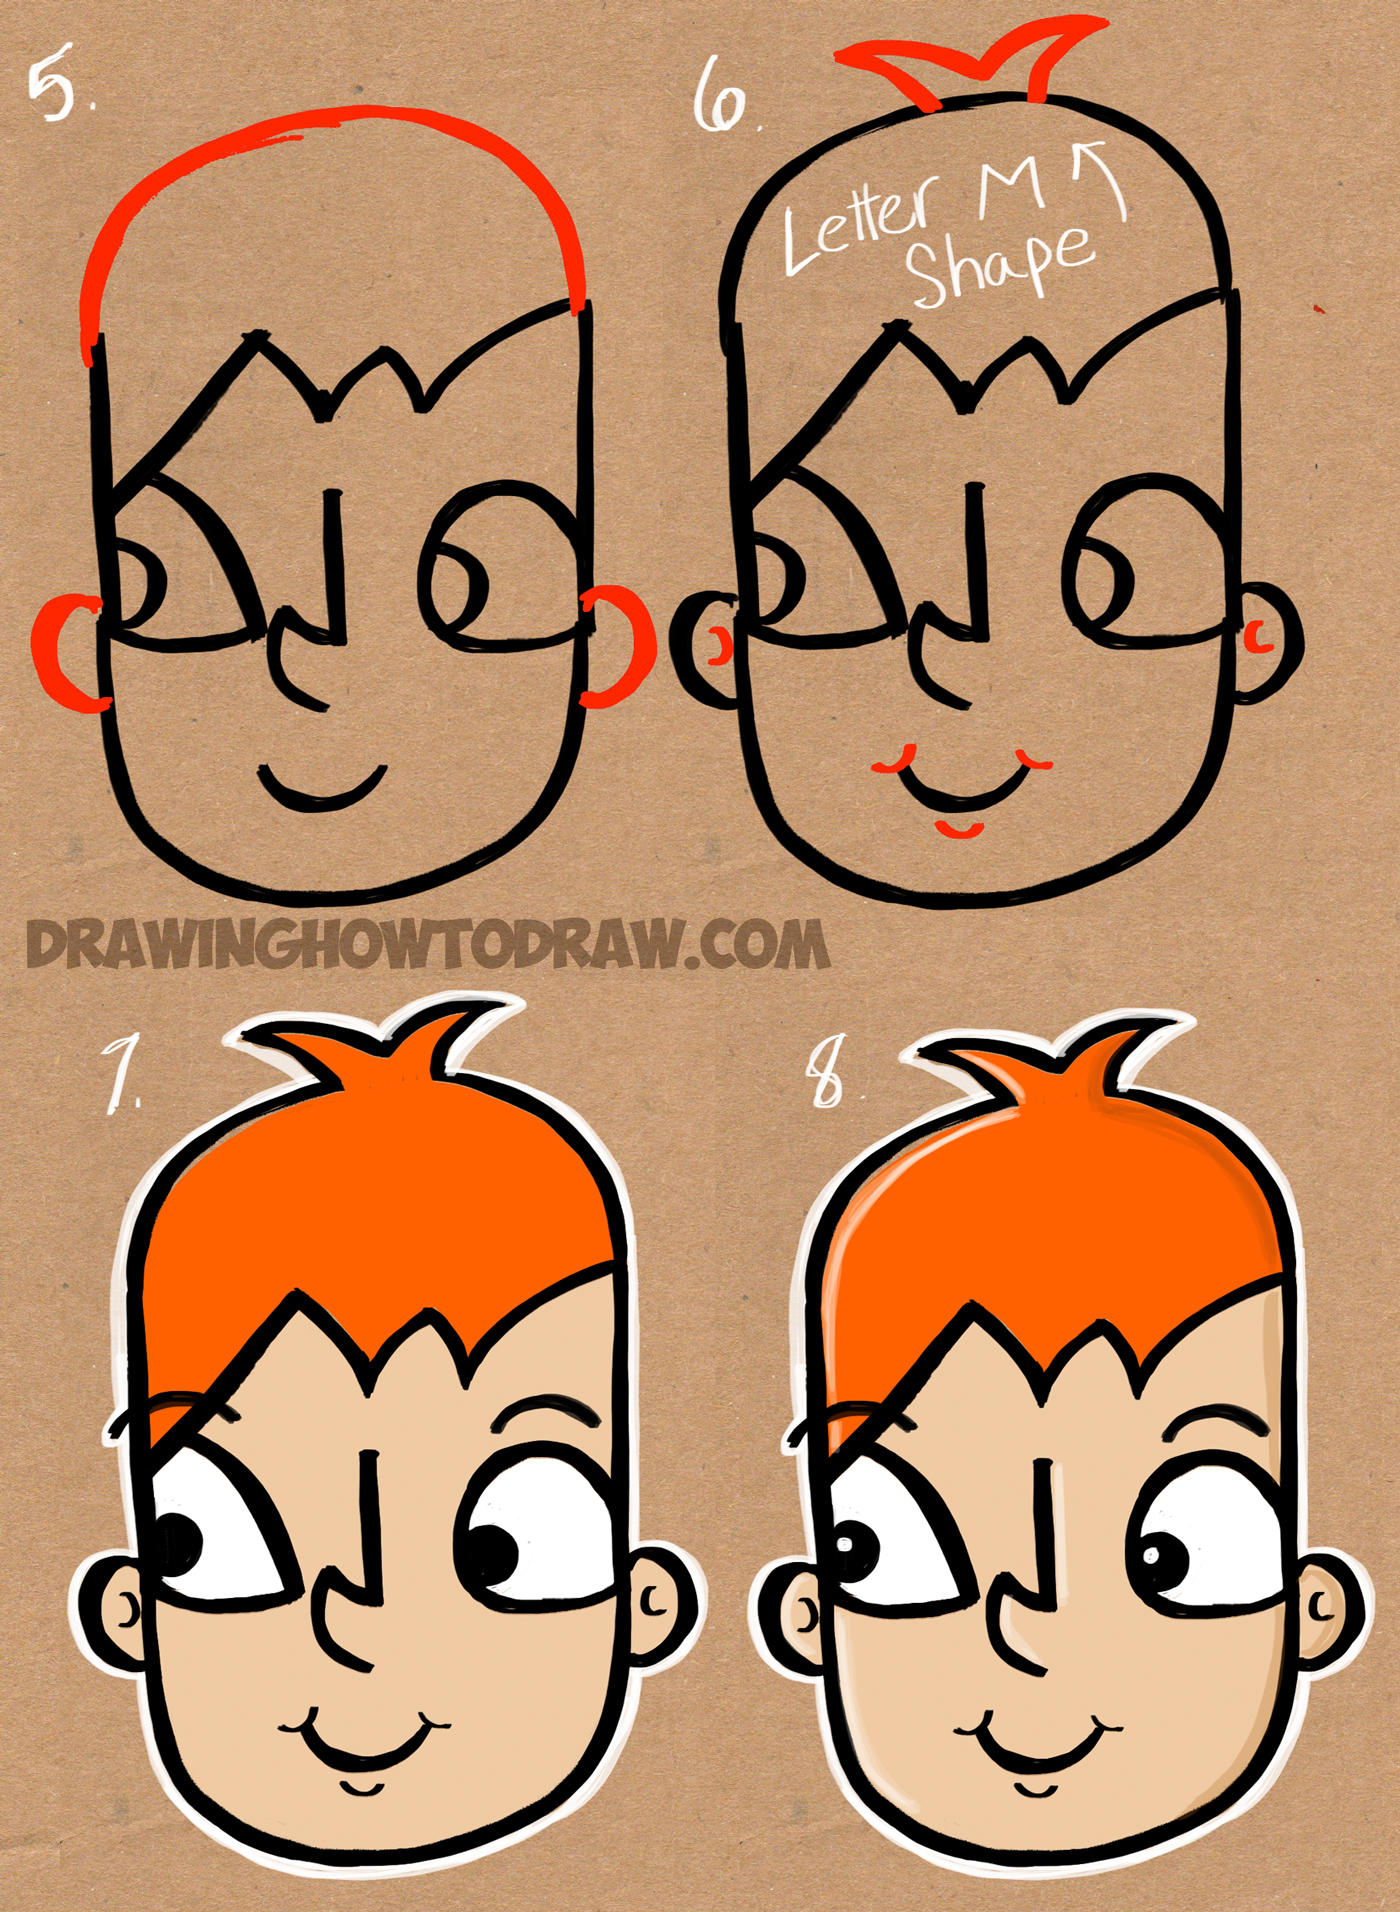 learn how to draw a cartoon kid from thew word kid